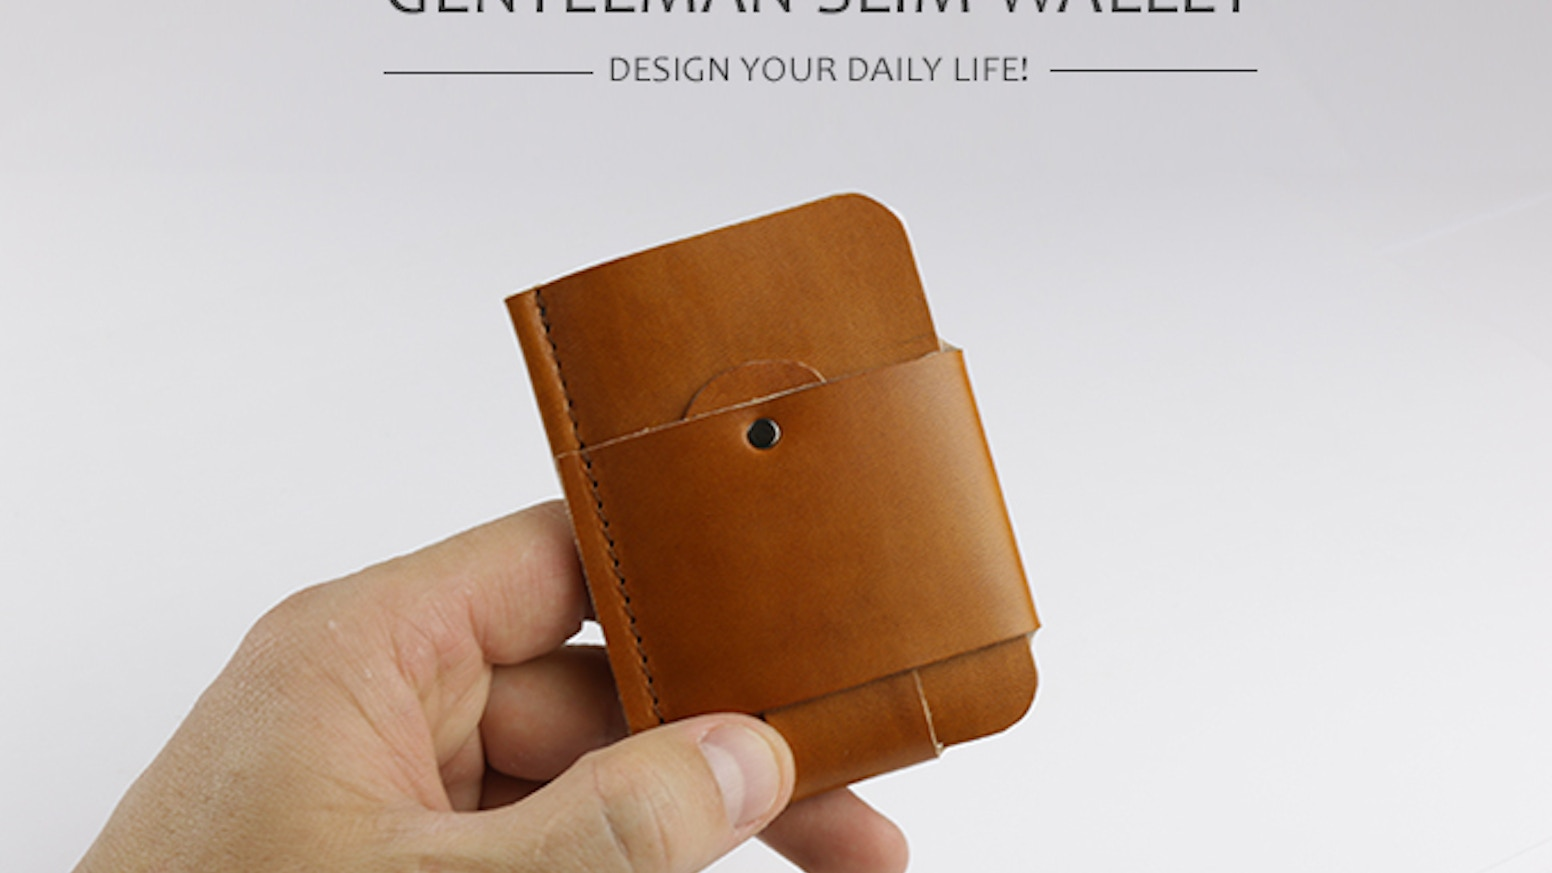 Handmade, minimalist and natural leather wallet for everyone. Designed in different colors. Suitable for credit cards and notes.